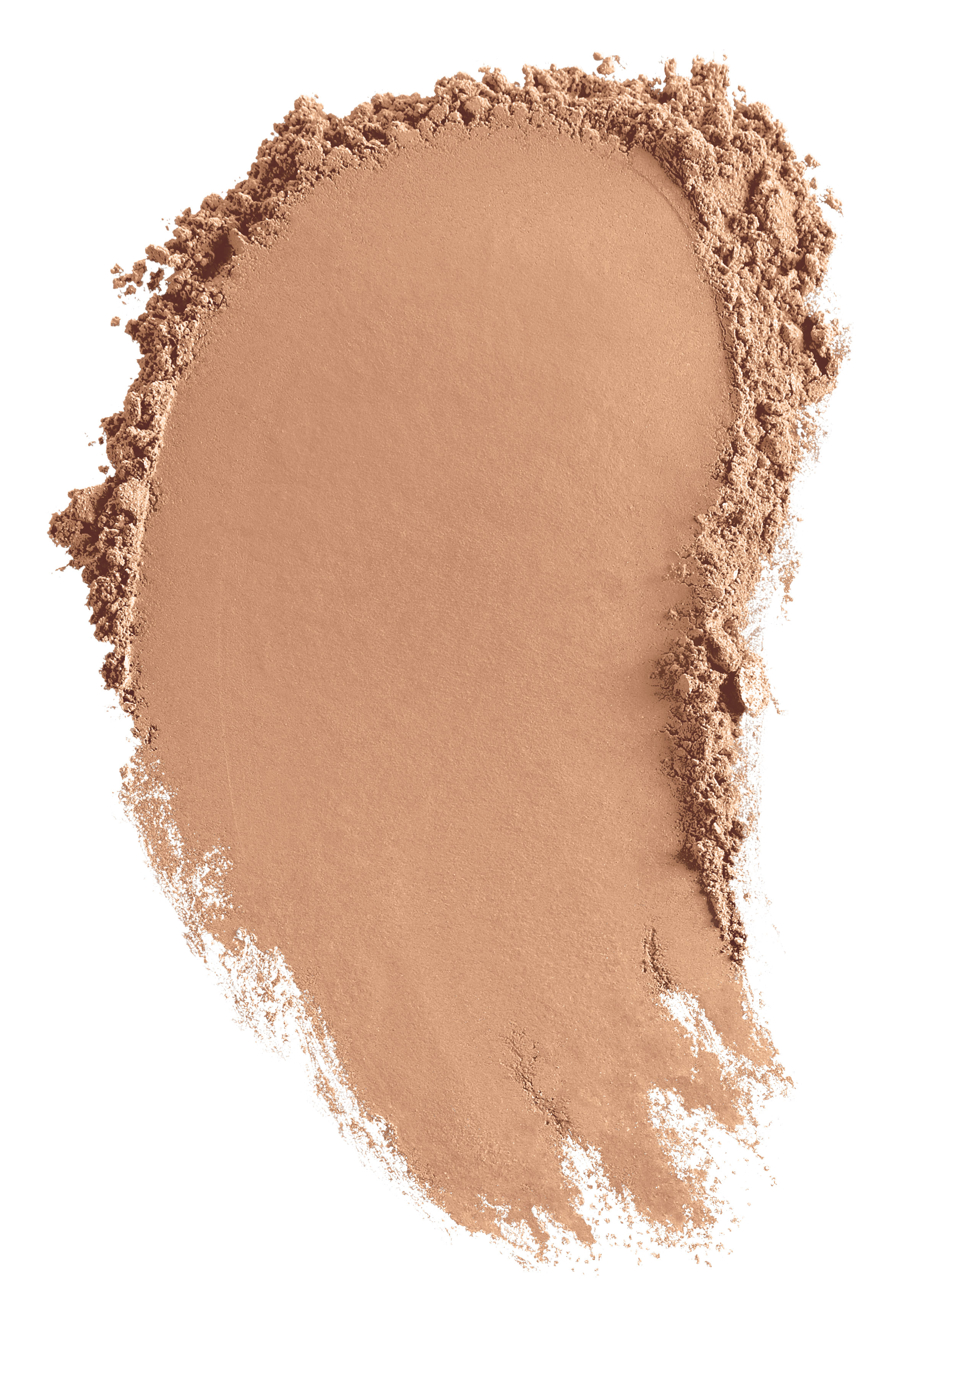 Original_Foundation_Medium_Tan_Smear